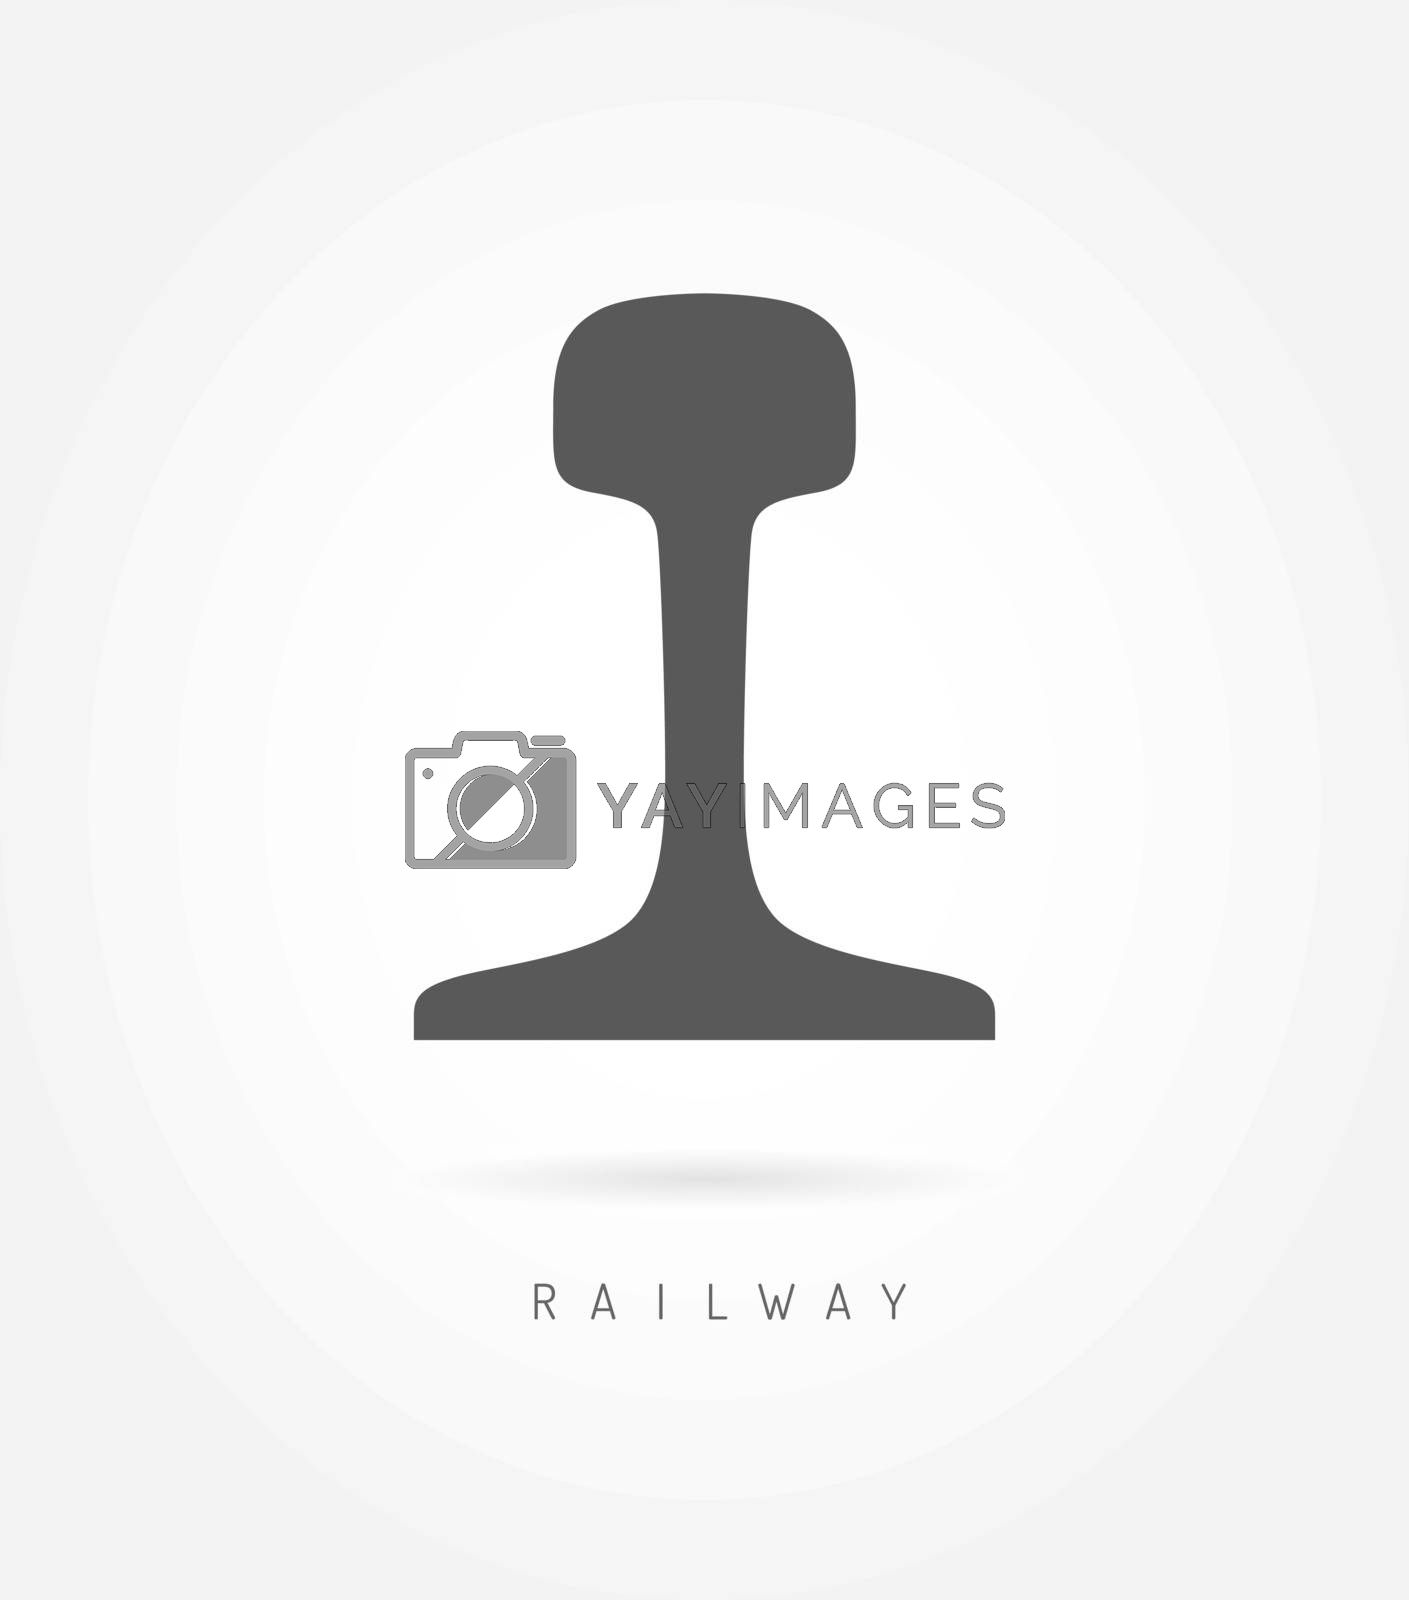 Rail logo icon railway business concept